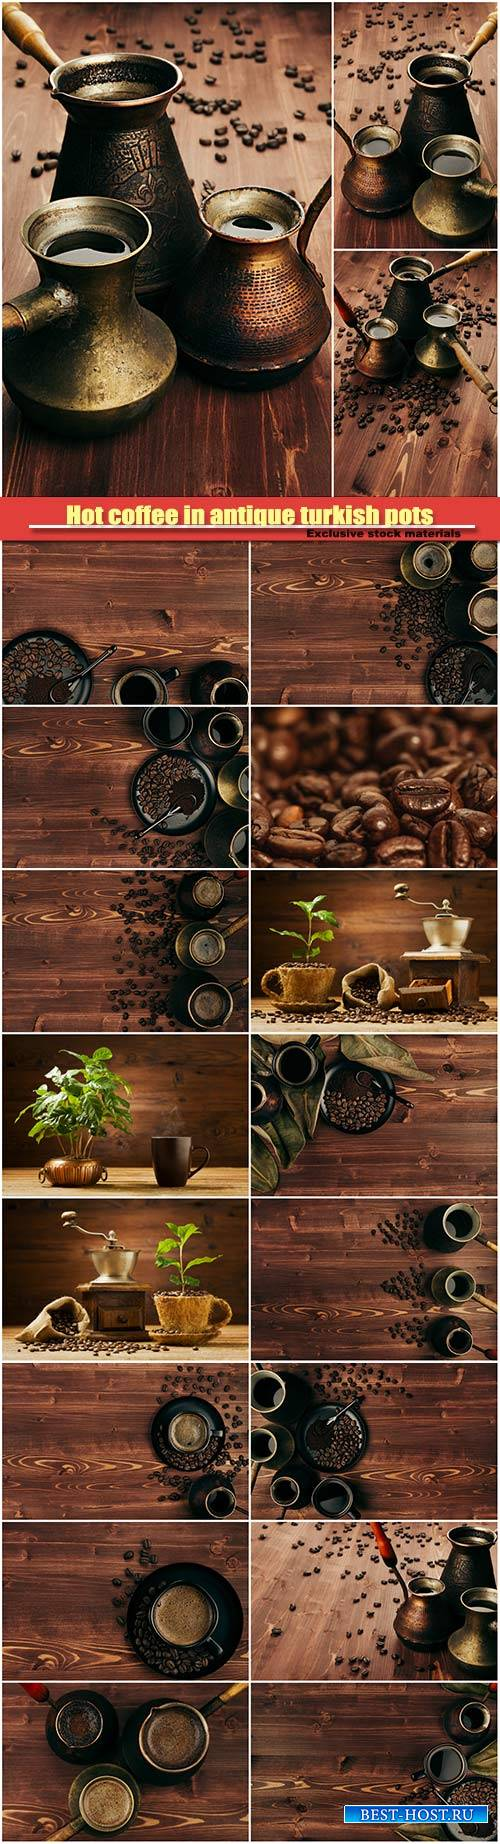 Hot coffee in antique turkish pots, beans on brown old wooden board backgro ...